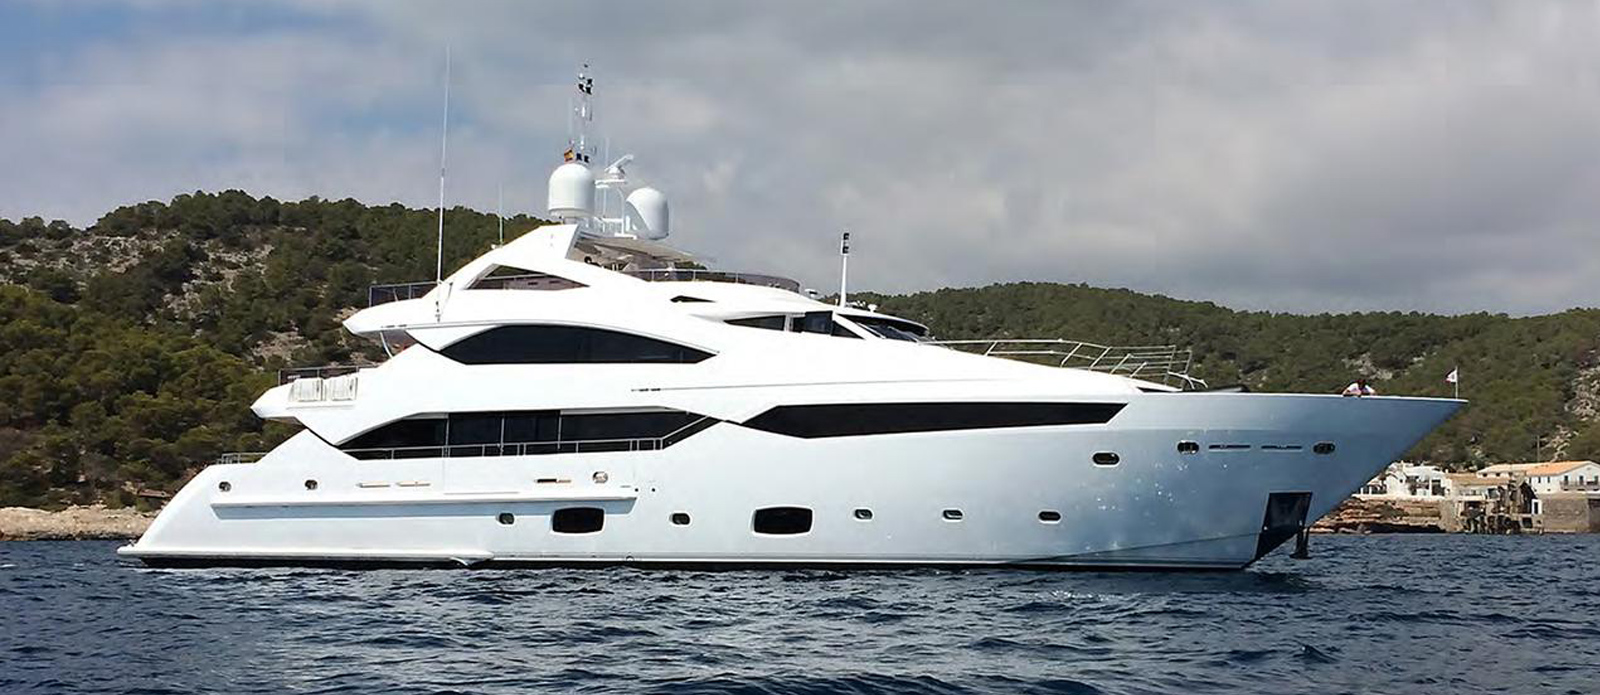 This Sunseeker 40 Metre Yacht is a unique off market opportunity to purchase an extremely low hour vessel exclusively from Bristow-Holmes